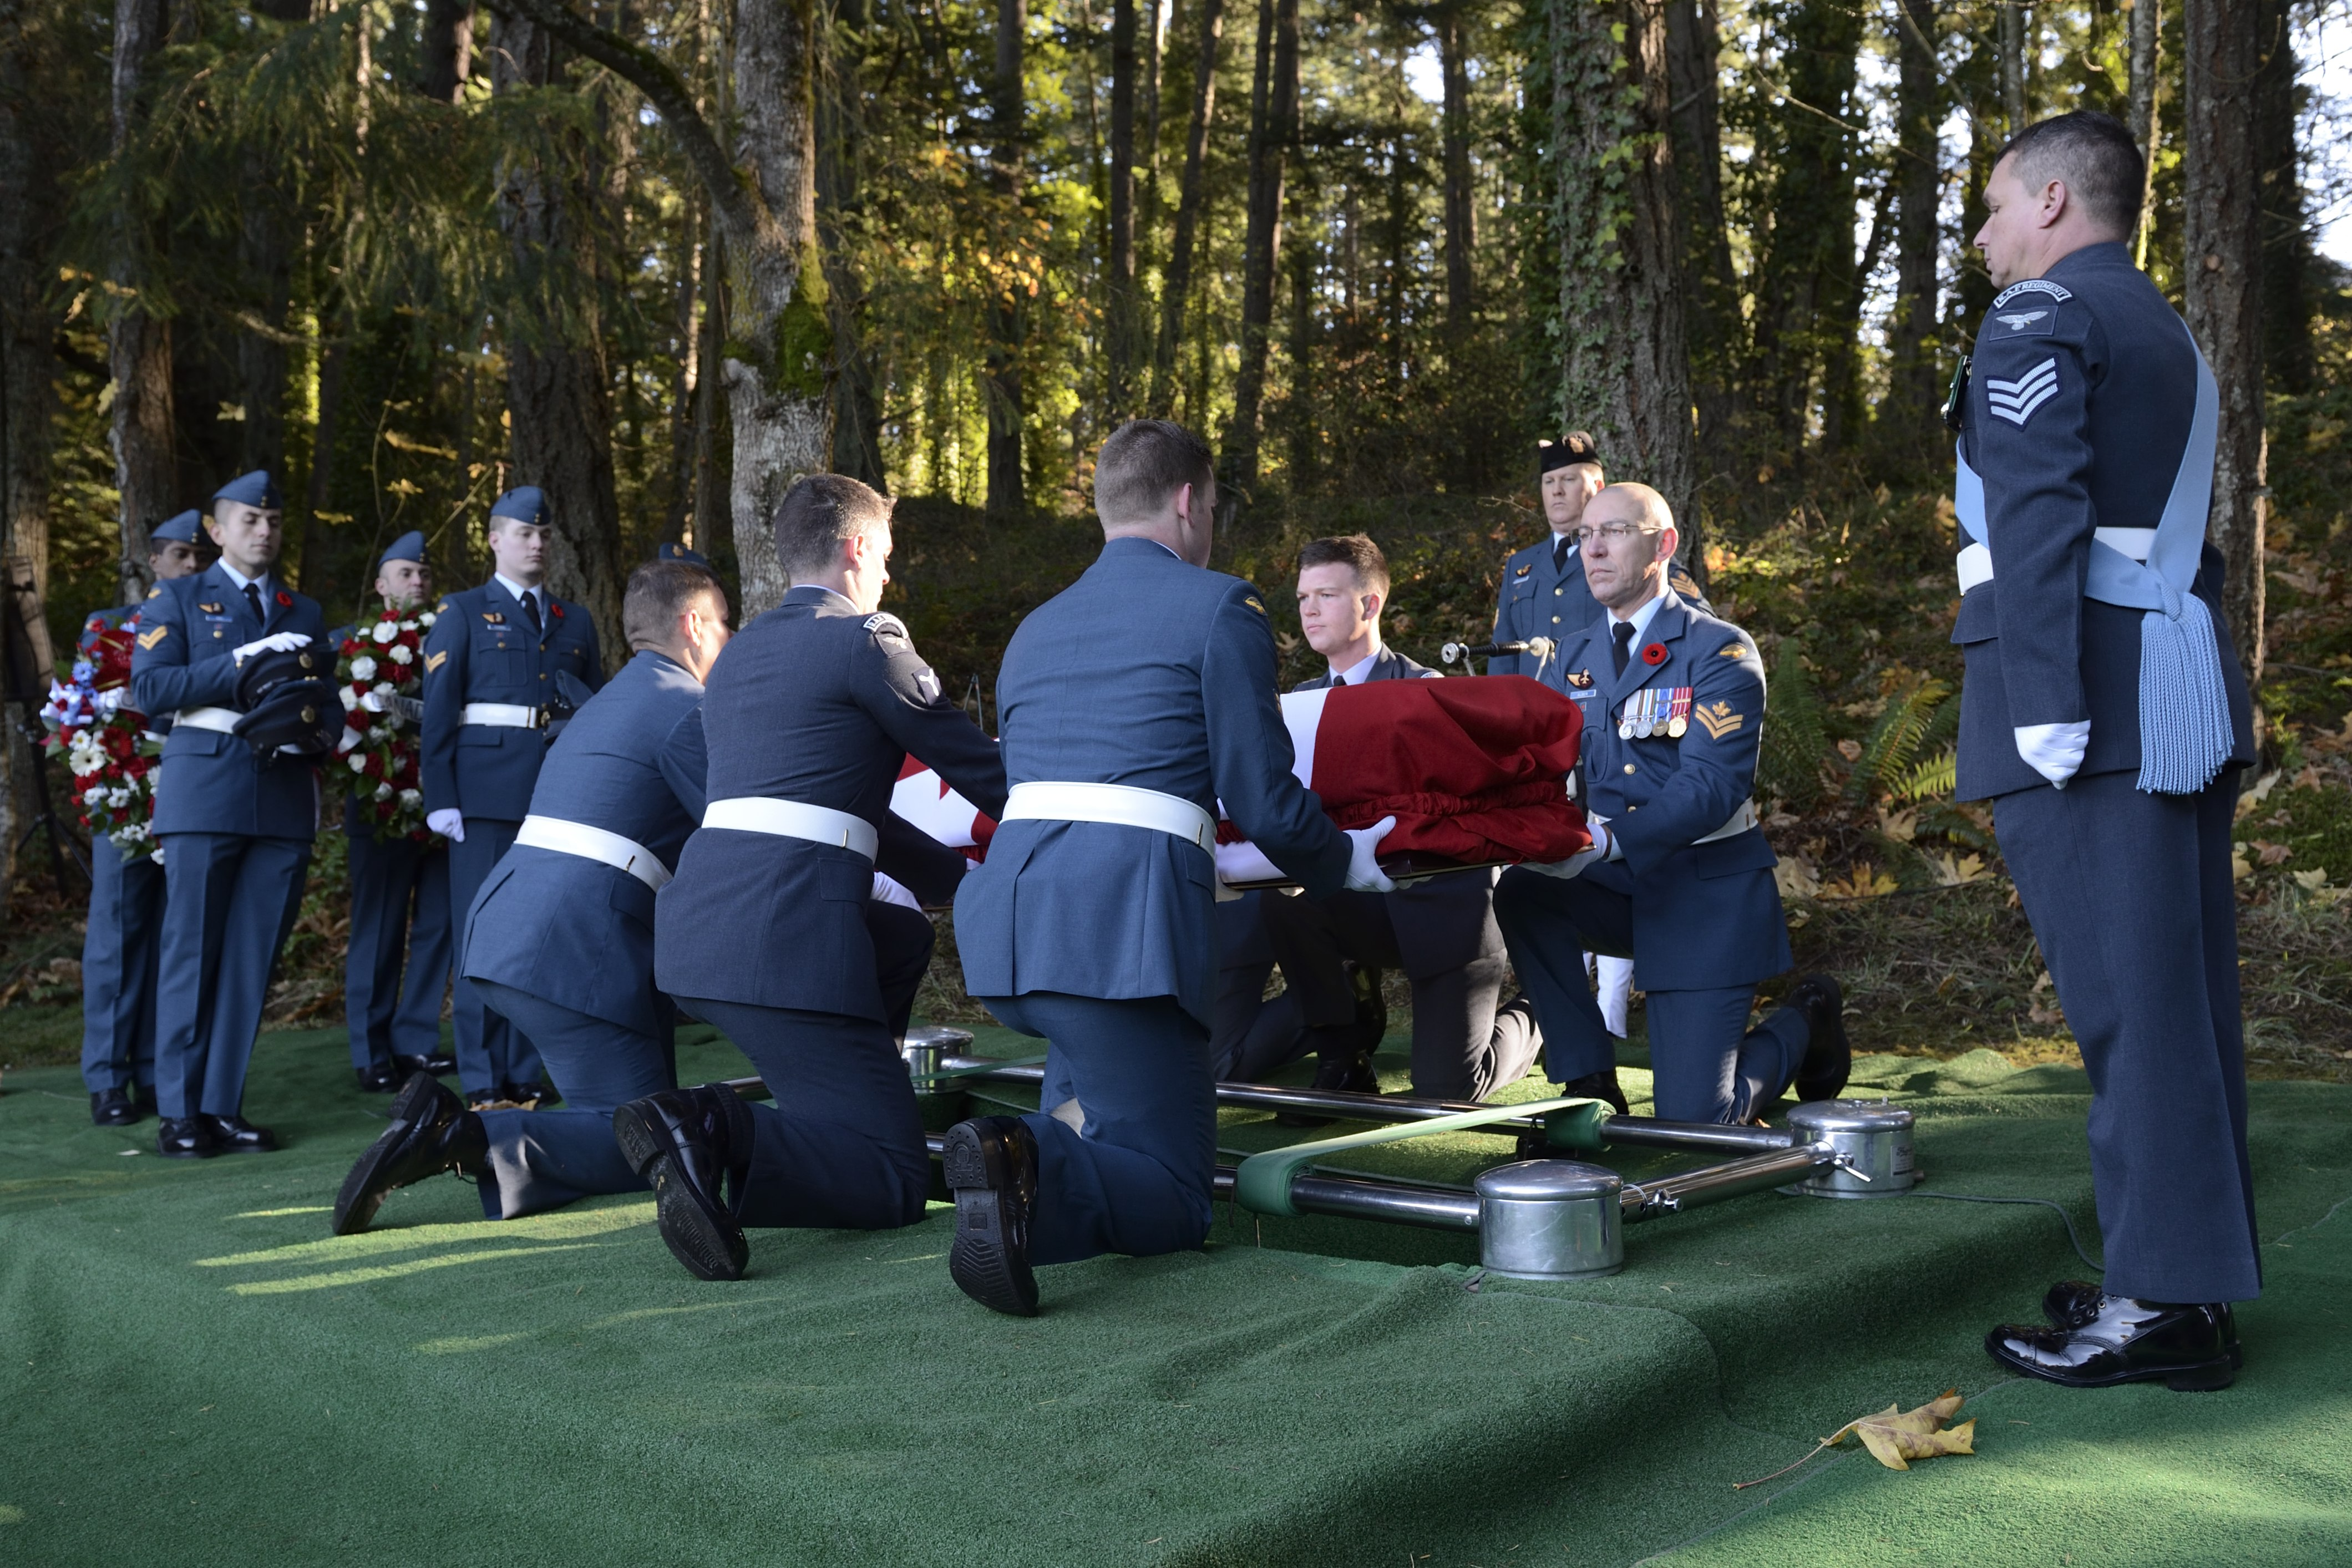 On November 10, 2014, Royal Canadian Air Force (RCAF) pall bearers place the casket of Pilot Officer Charles George Fox, Pilot Officer Anthony William Lawrence and Sergeant Robert Ernest Luckock, of the Royal Air Force, and Sergeant William Baird, of the RCAF, at their final resting place in Royal Oak Burial Park in Victoria, British Columbia. PHOTO: Corporal Malcolm Byers